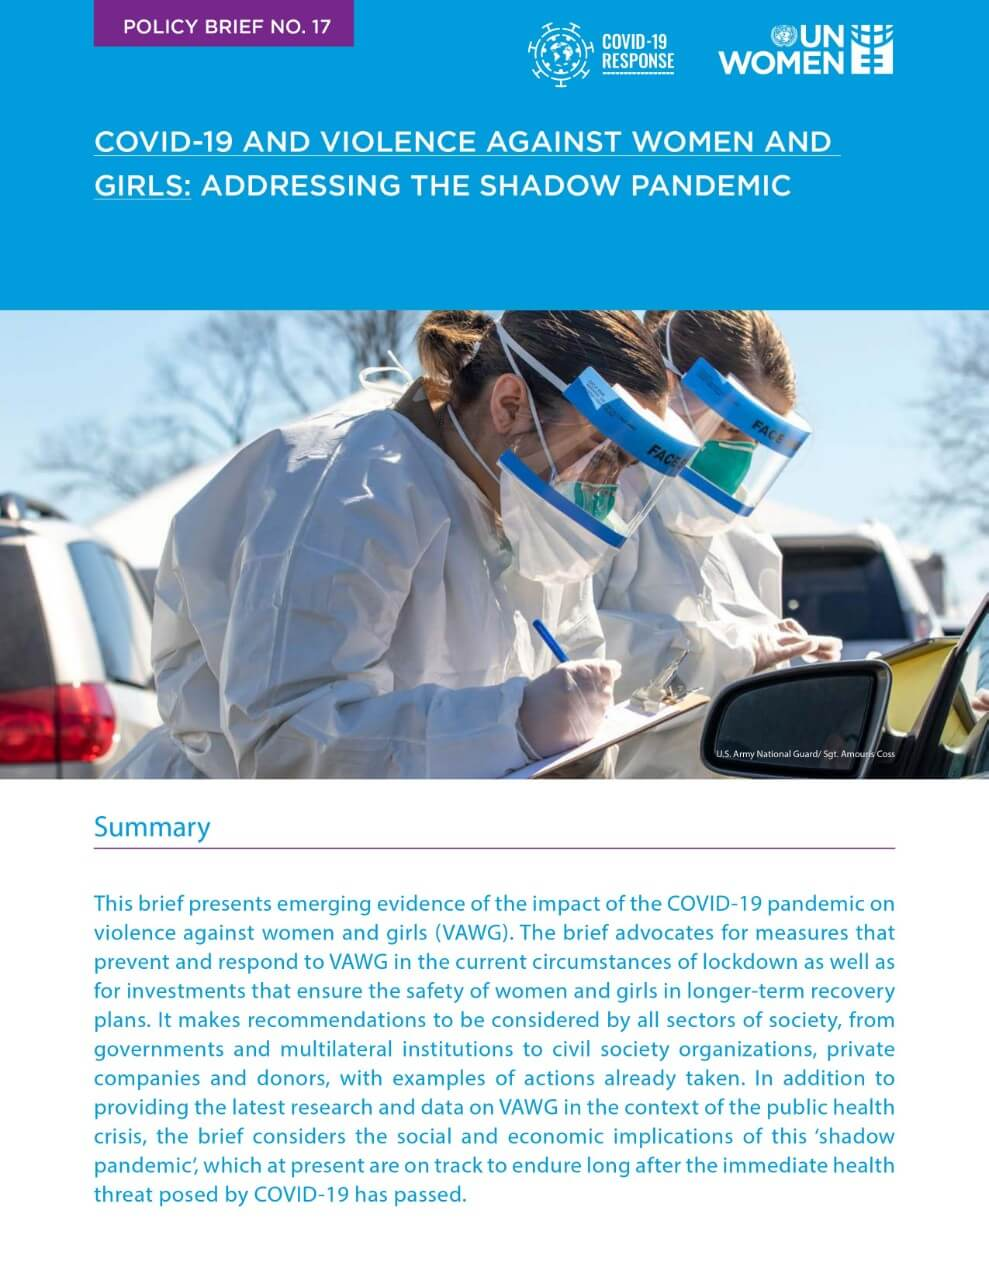 COVID-19 and violence against women and girls: Addressing the shadow pandemic